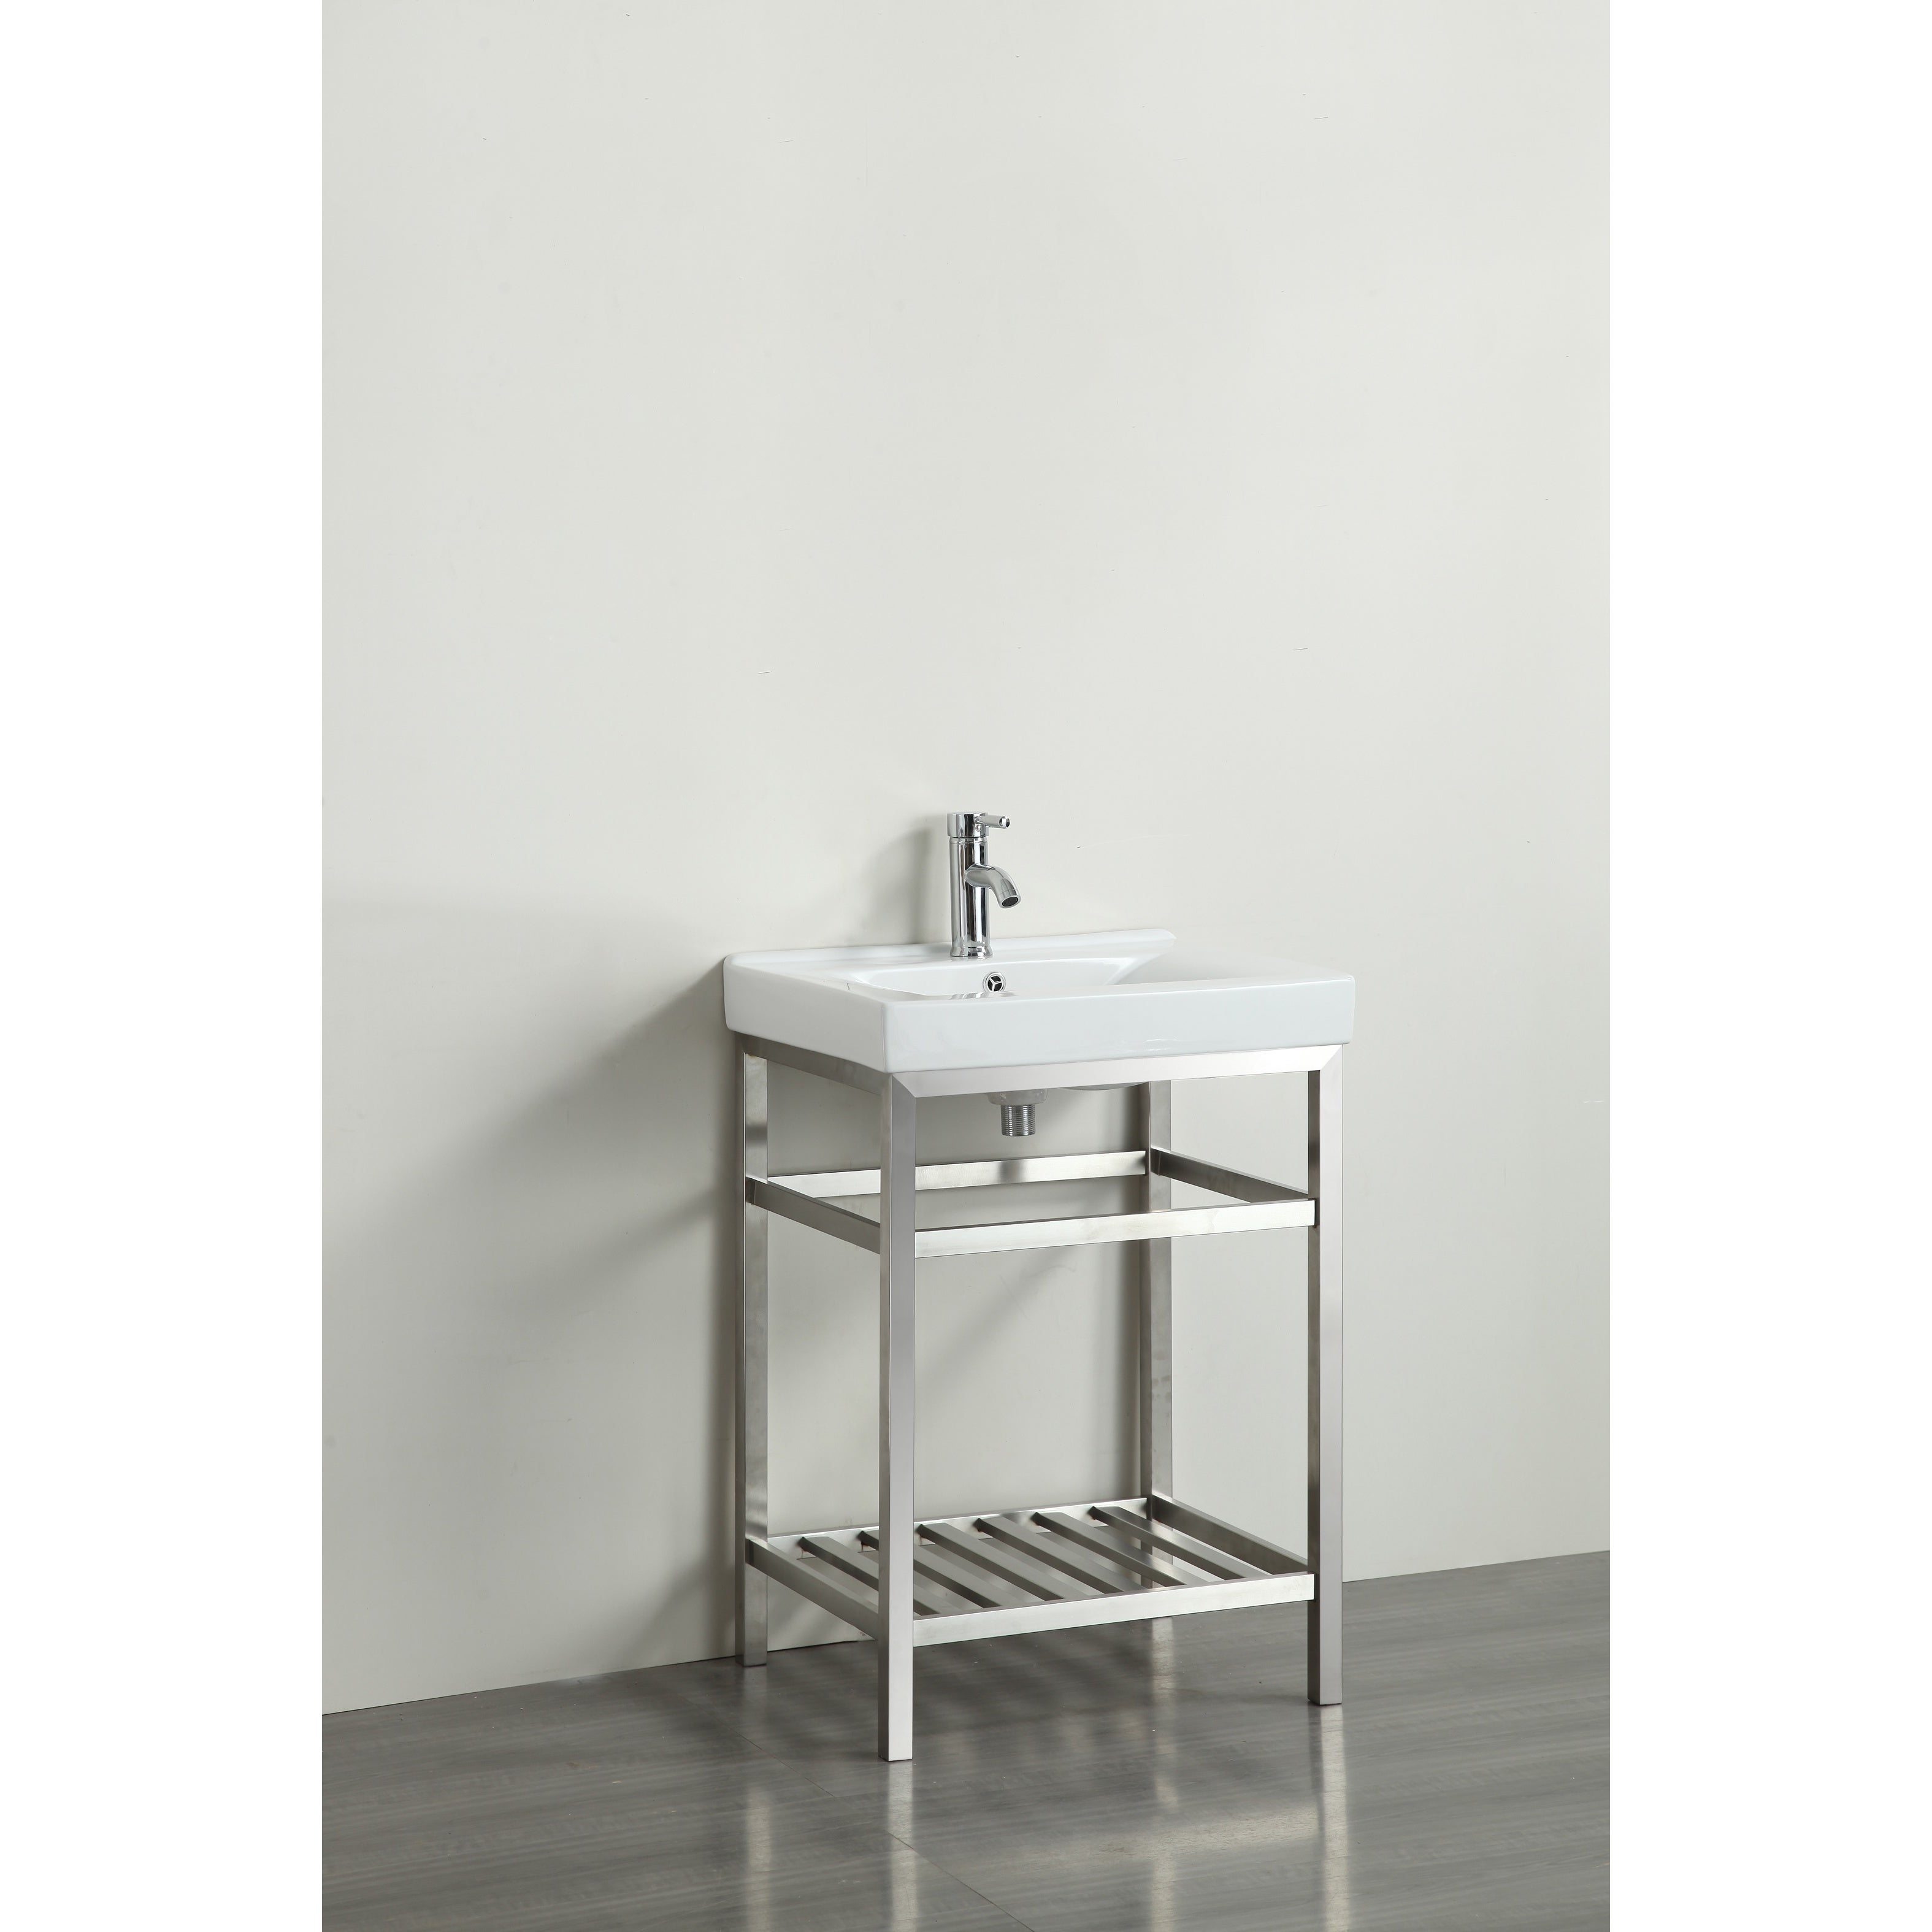 Shop Eviva Stone 24-inch Bathroom Vanity Stainless Steel with White ...